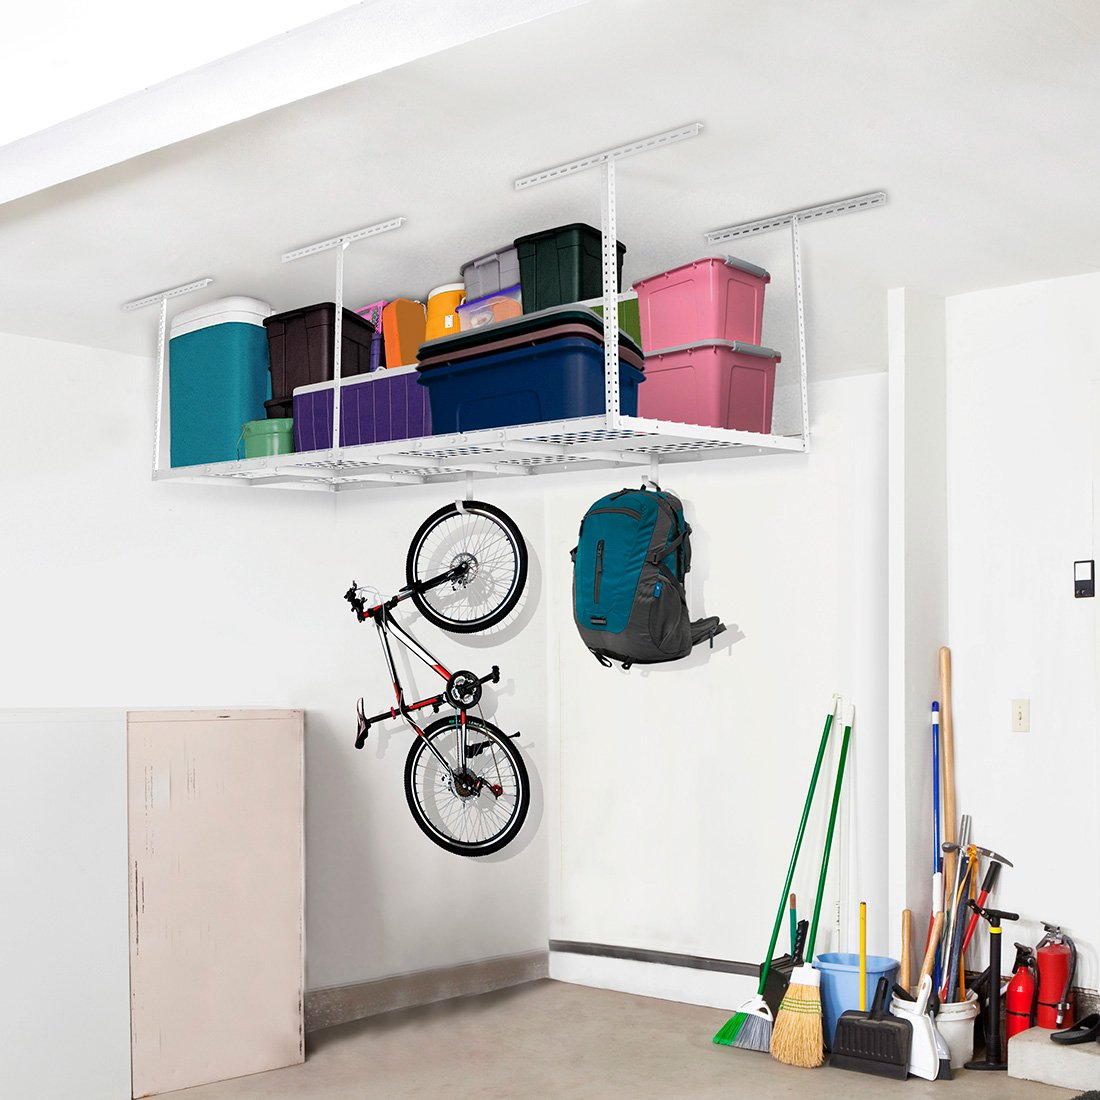 FLEXIMOUNTS 3x8 Overhead Garage Storage Rack Adjustable Ceiling Storage Rack Heavy Duty, 96'' Length x 36'' Width x 40'' Height, White by FLEXIMOUNTS